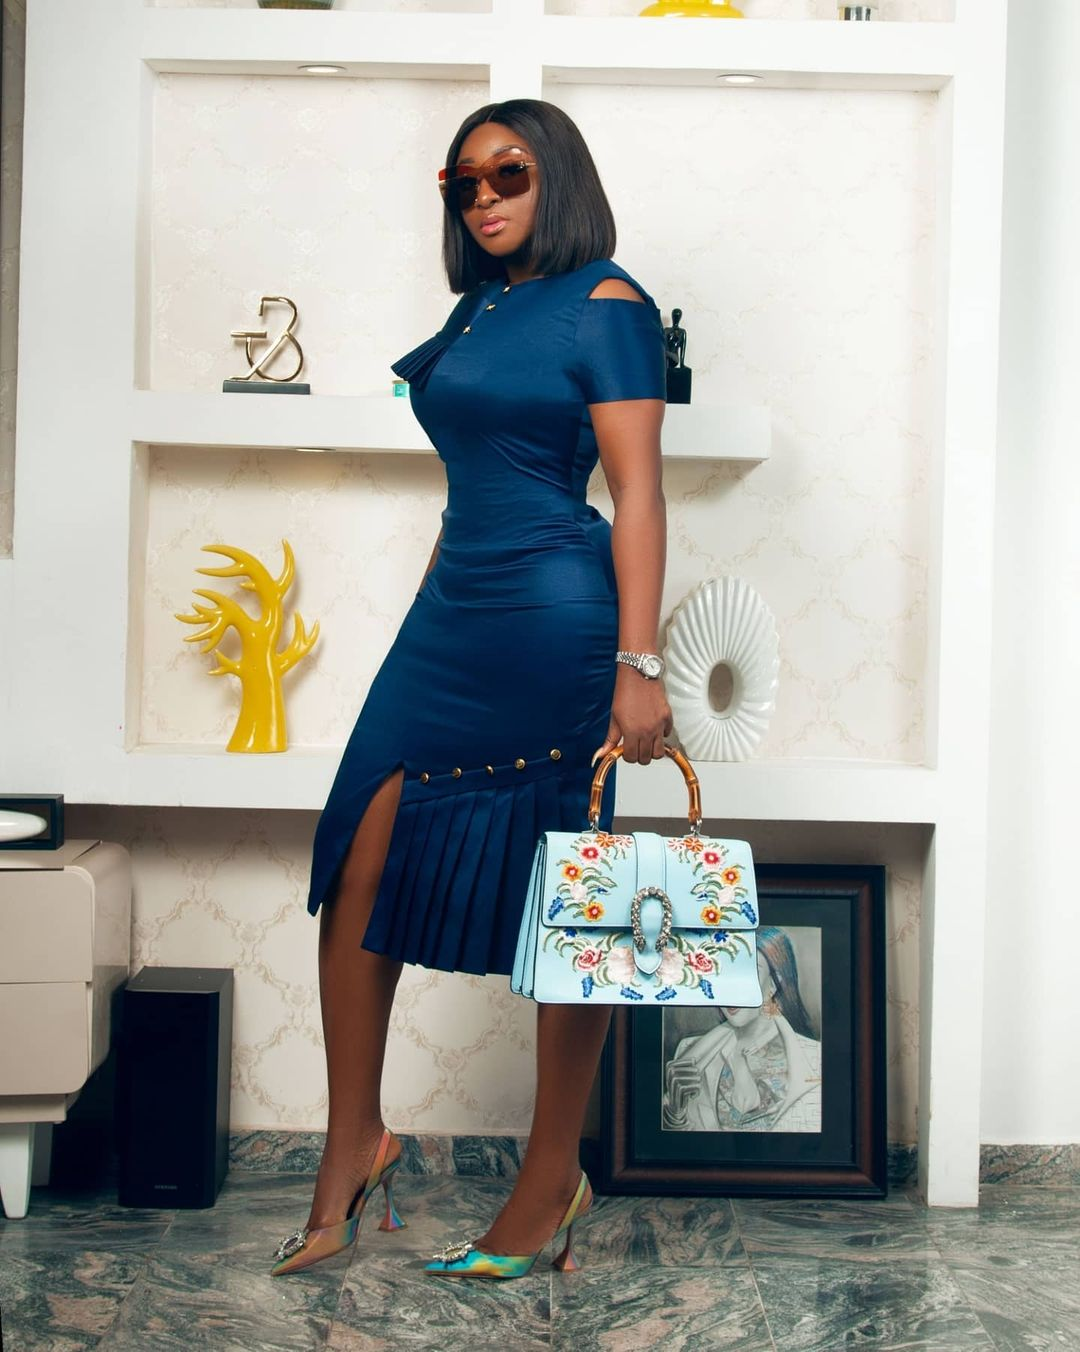 Ini Edo keeping It Classy On Navy Blue Gown With Cold Shoulder